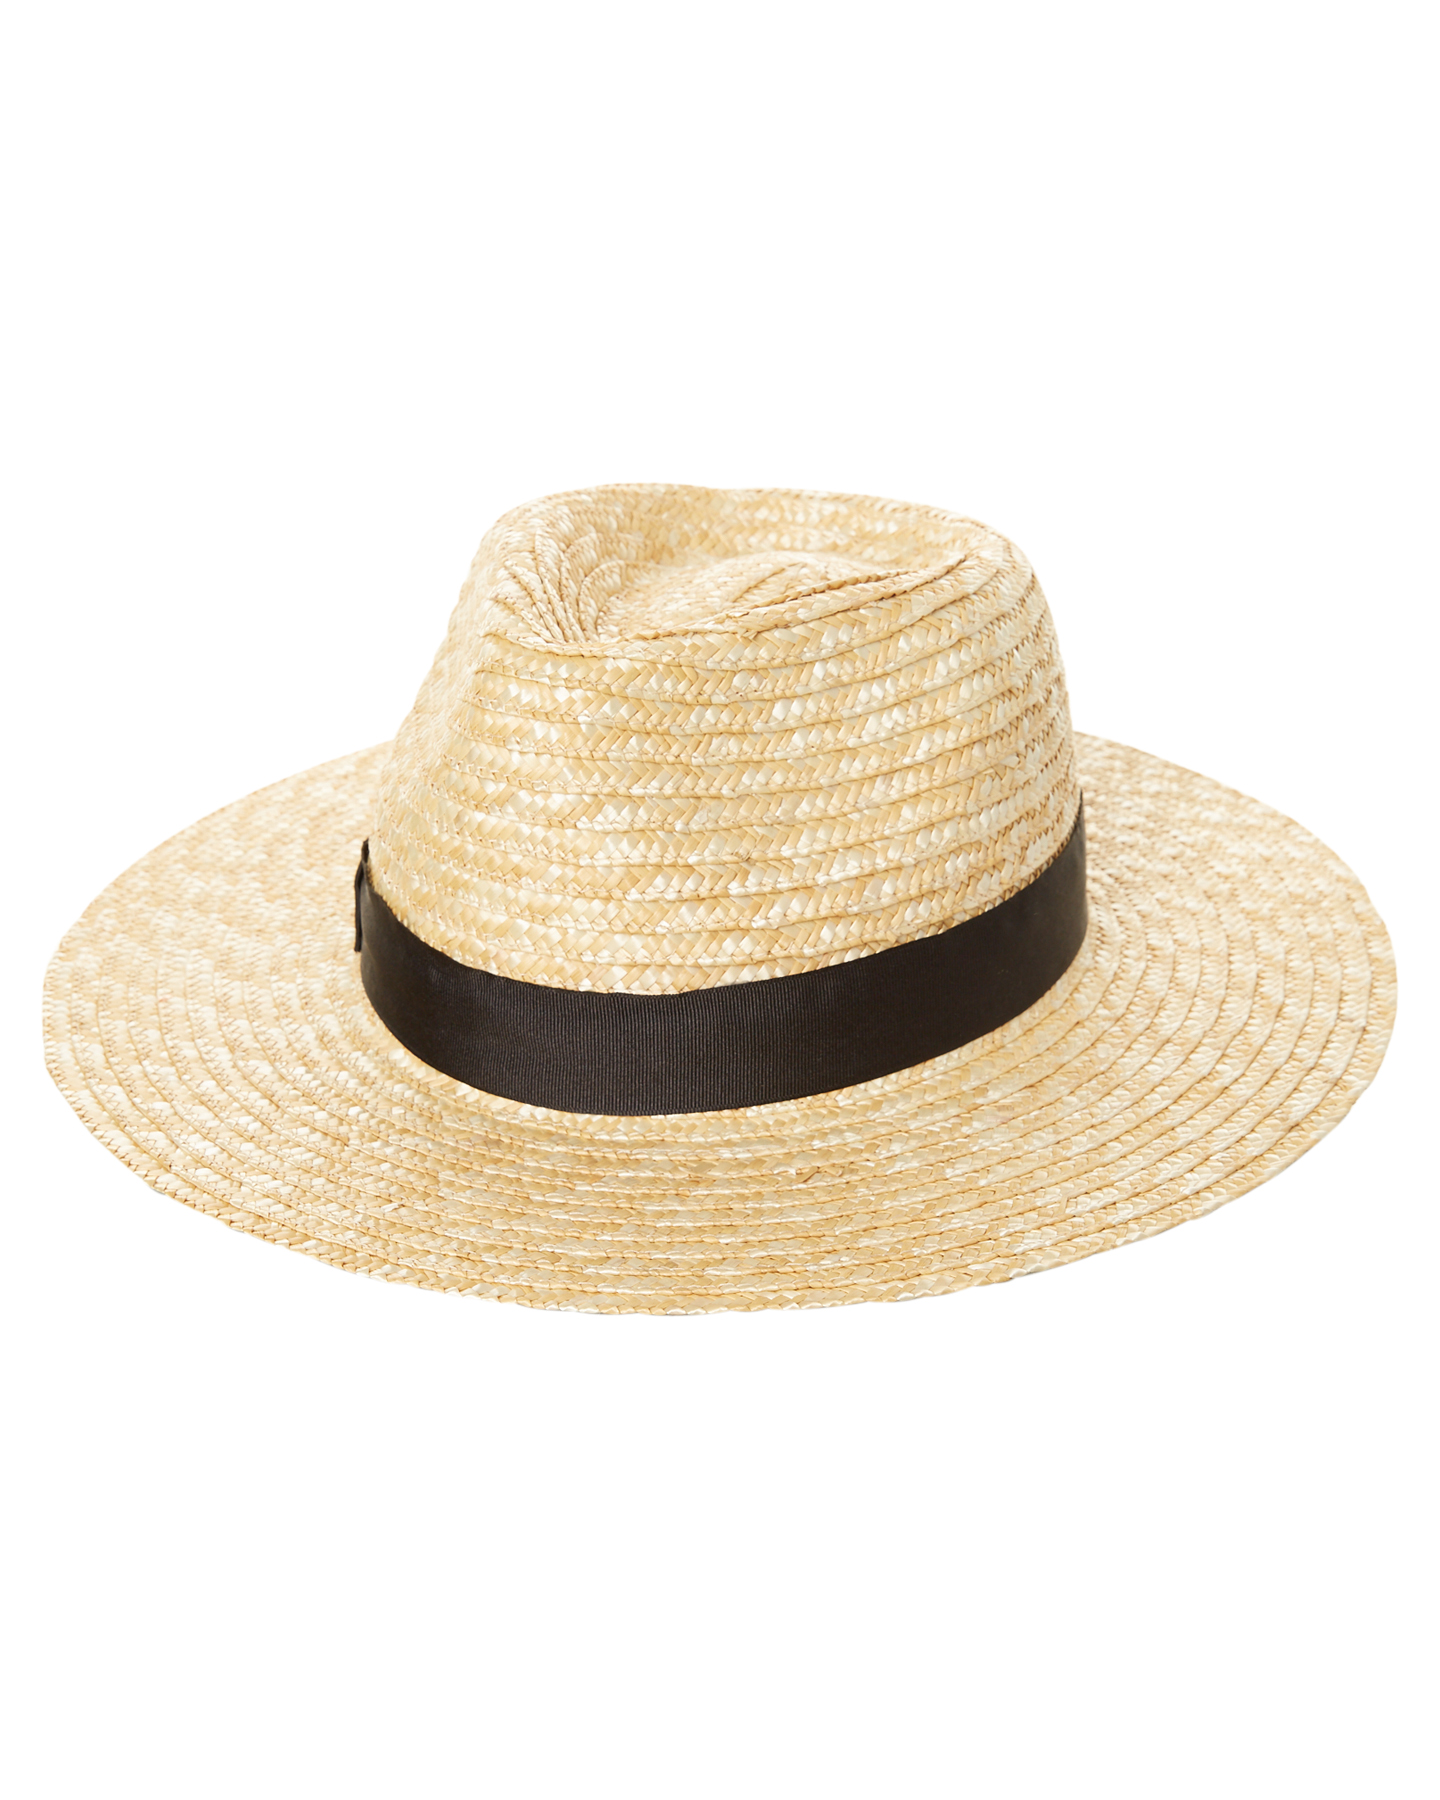 New Lack Of Color Women s The Spencer Fedora Hat Natural  b6a9eea6bfa